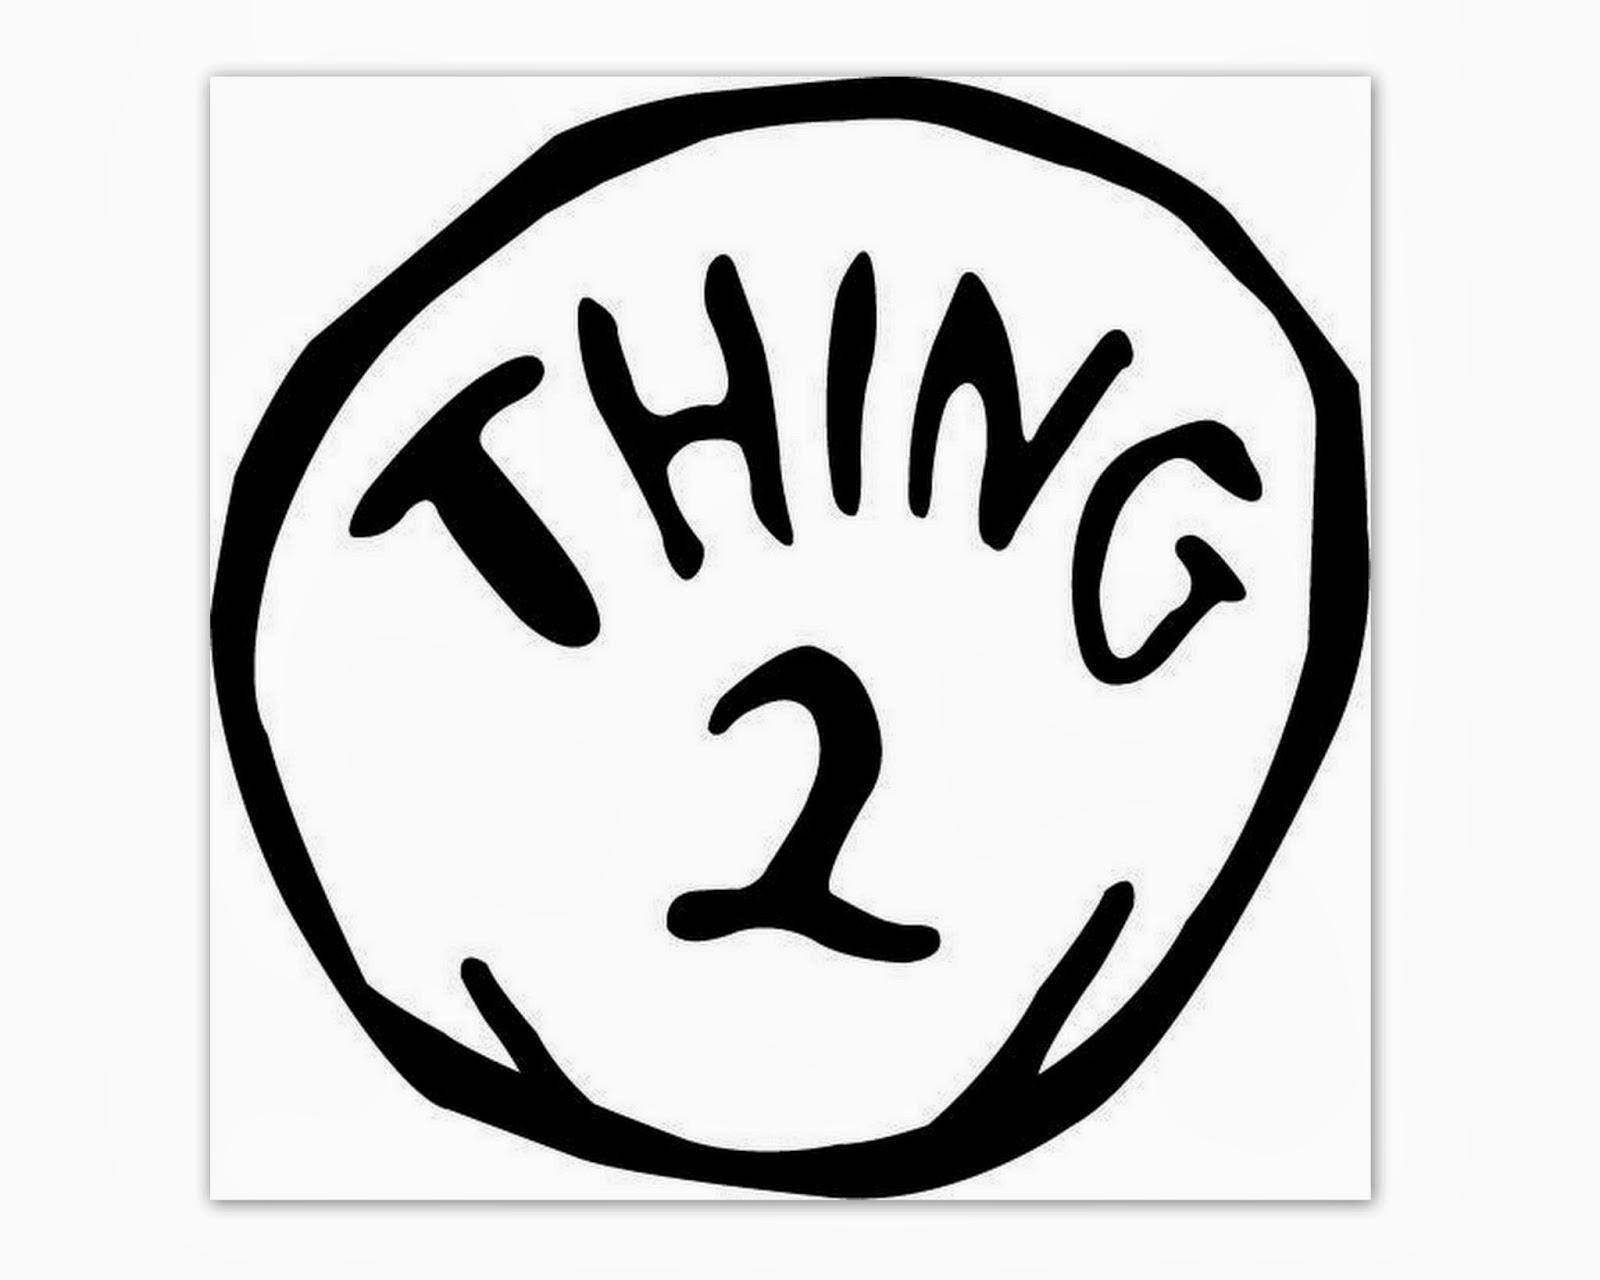 Thing 1 And Thing 2 Free Printable Template (77+ Images In - Thing 1 And Thing 2 Free Printable Template